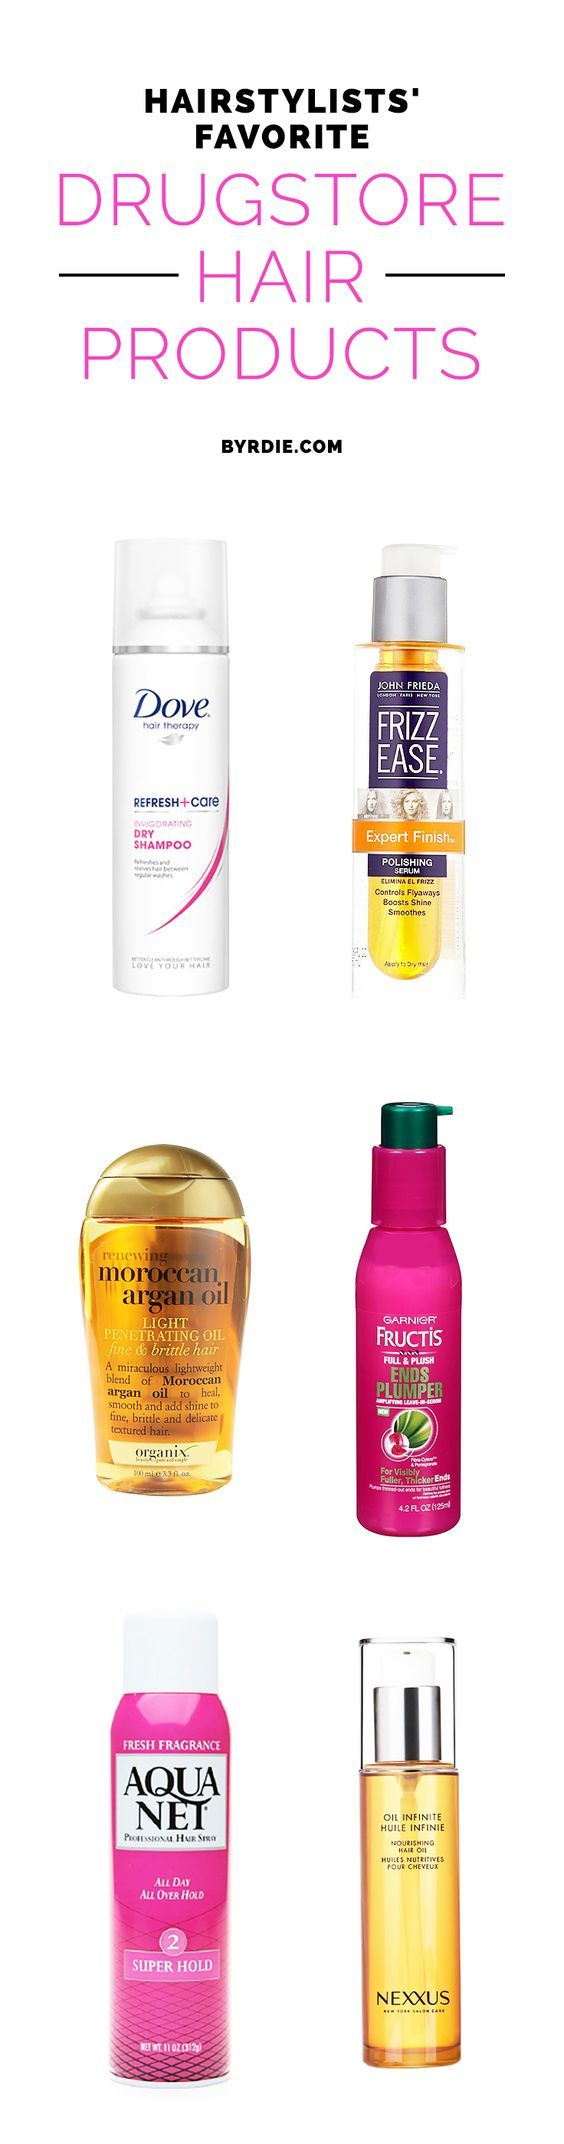 The 10 best drugstore hair products, according to top hairstylists